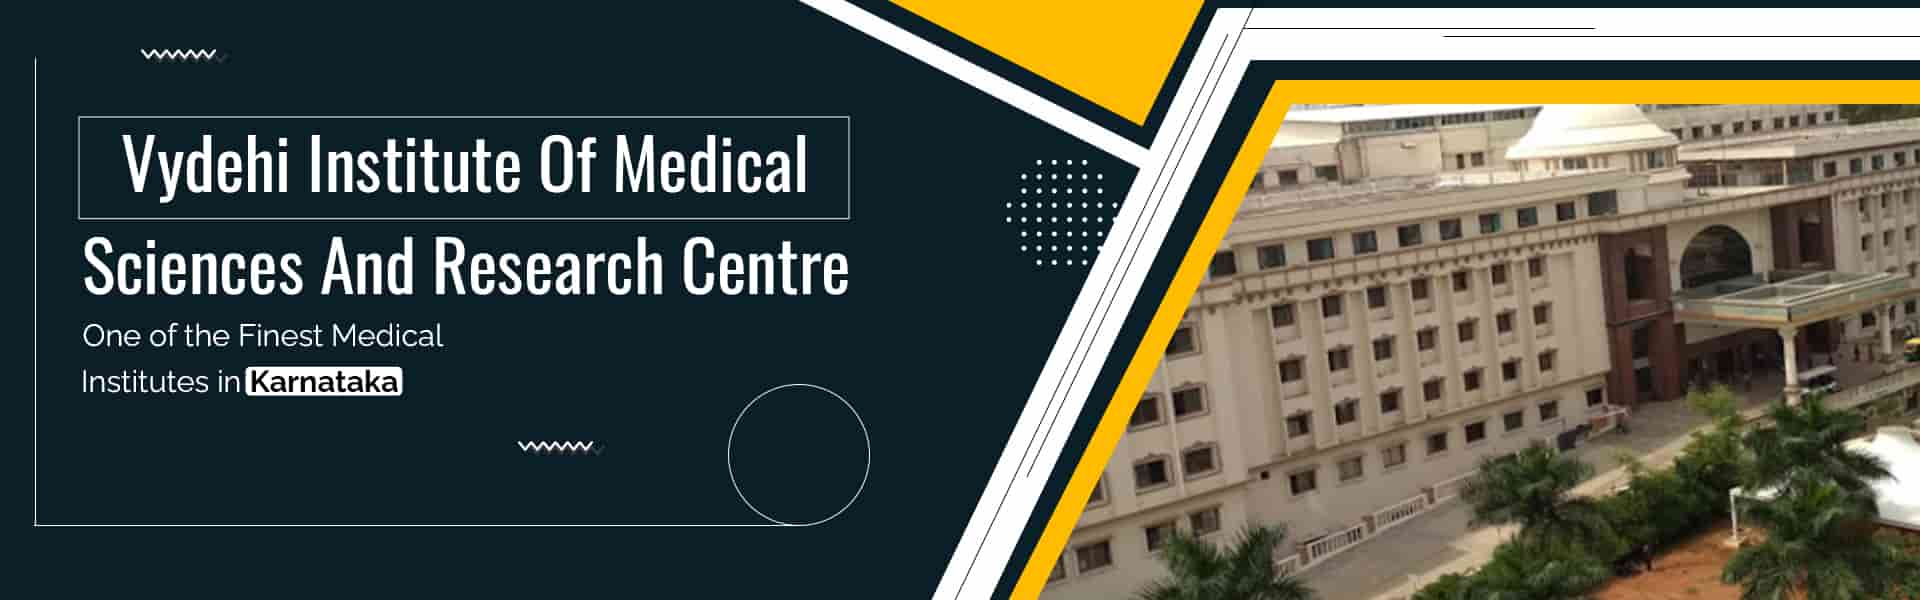 Vydehi Institute of Medical Sciences and Research Centre (VIMS), Bangalore